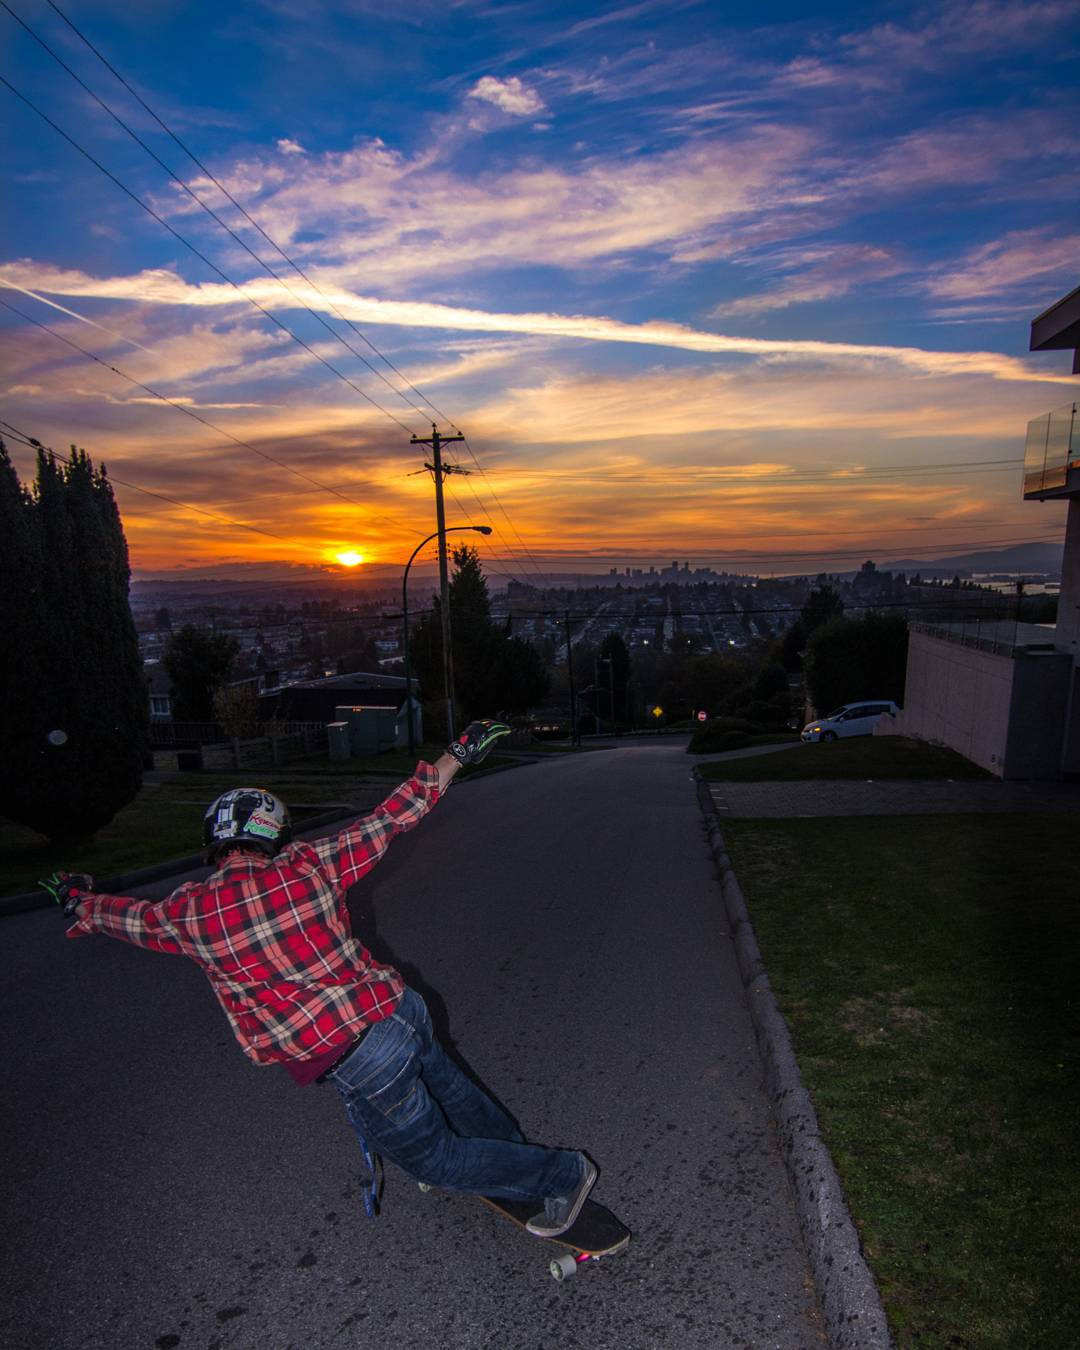 @frankboileau with a crazy sunset #toeside on Capitol Hills in BC.  Photo by @samblaizz #restlessboards #restlessfishbowl